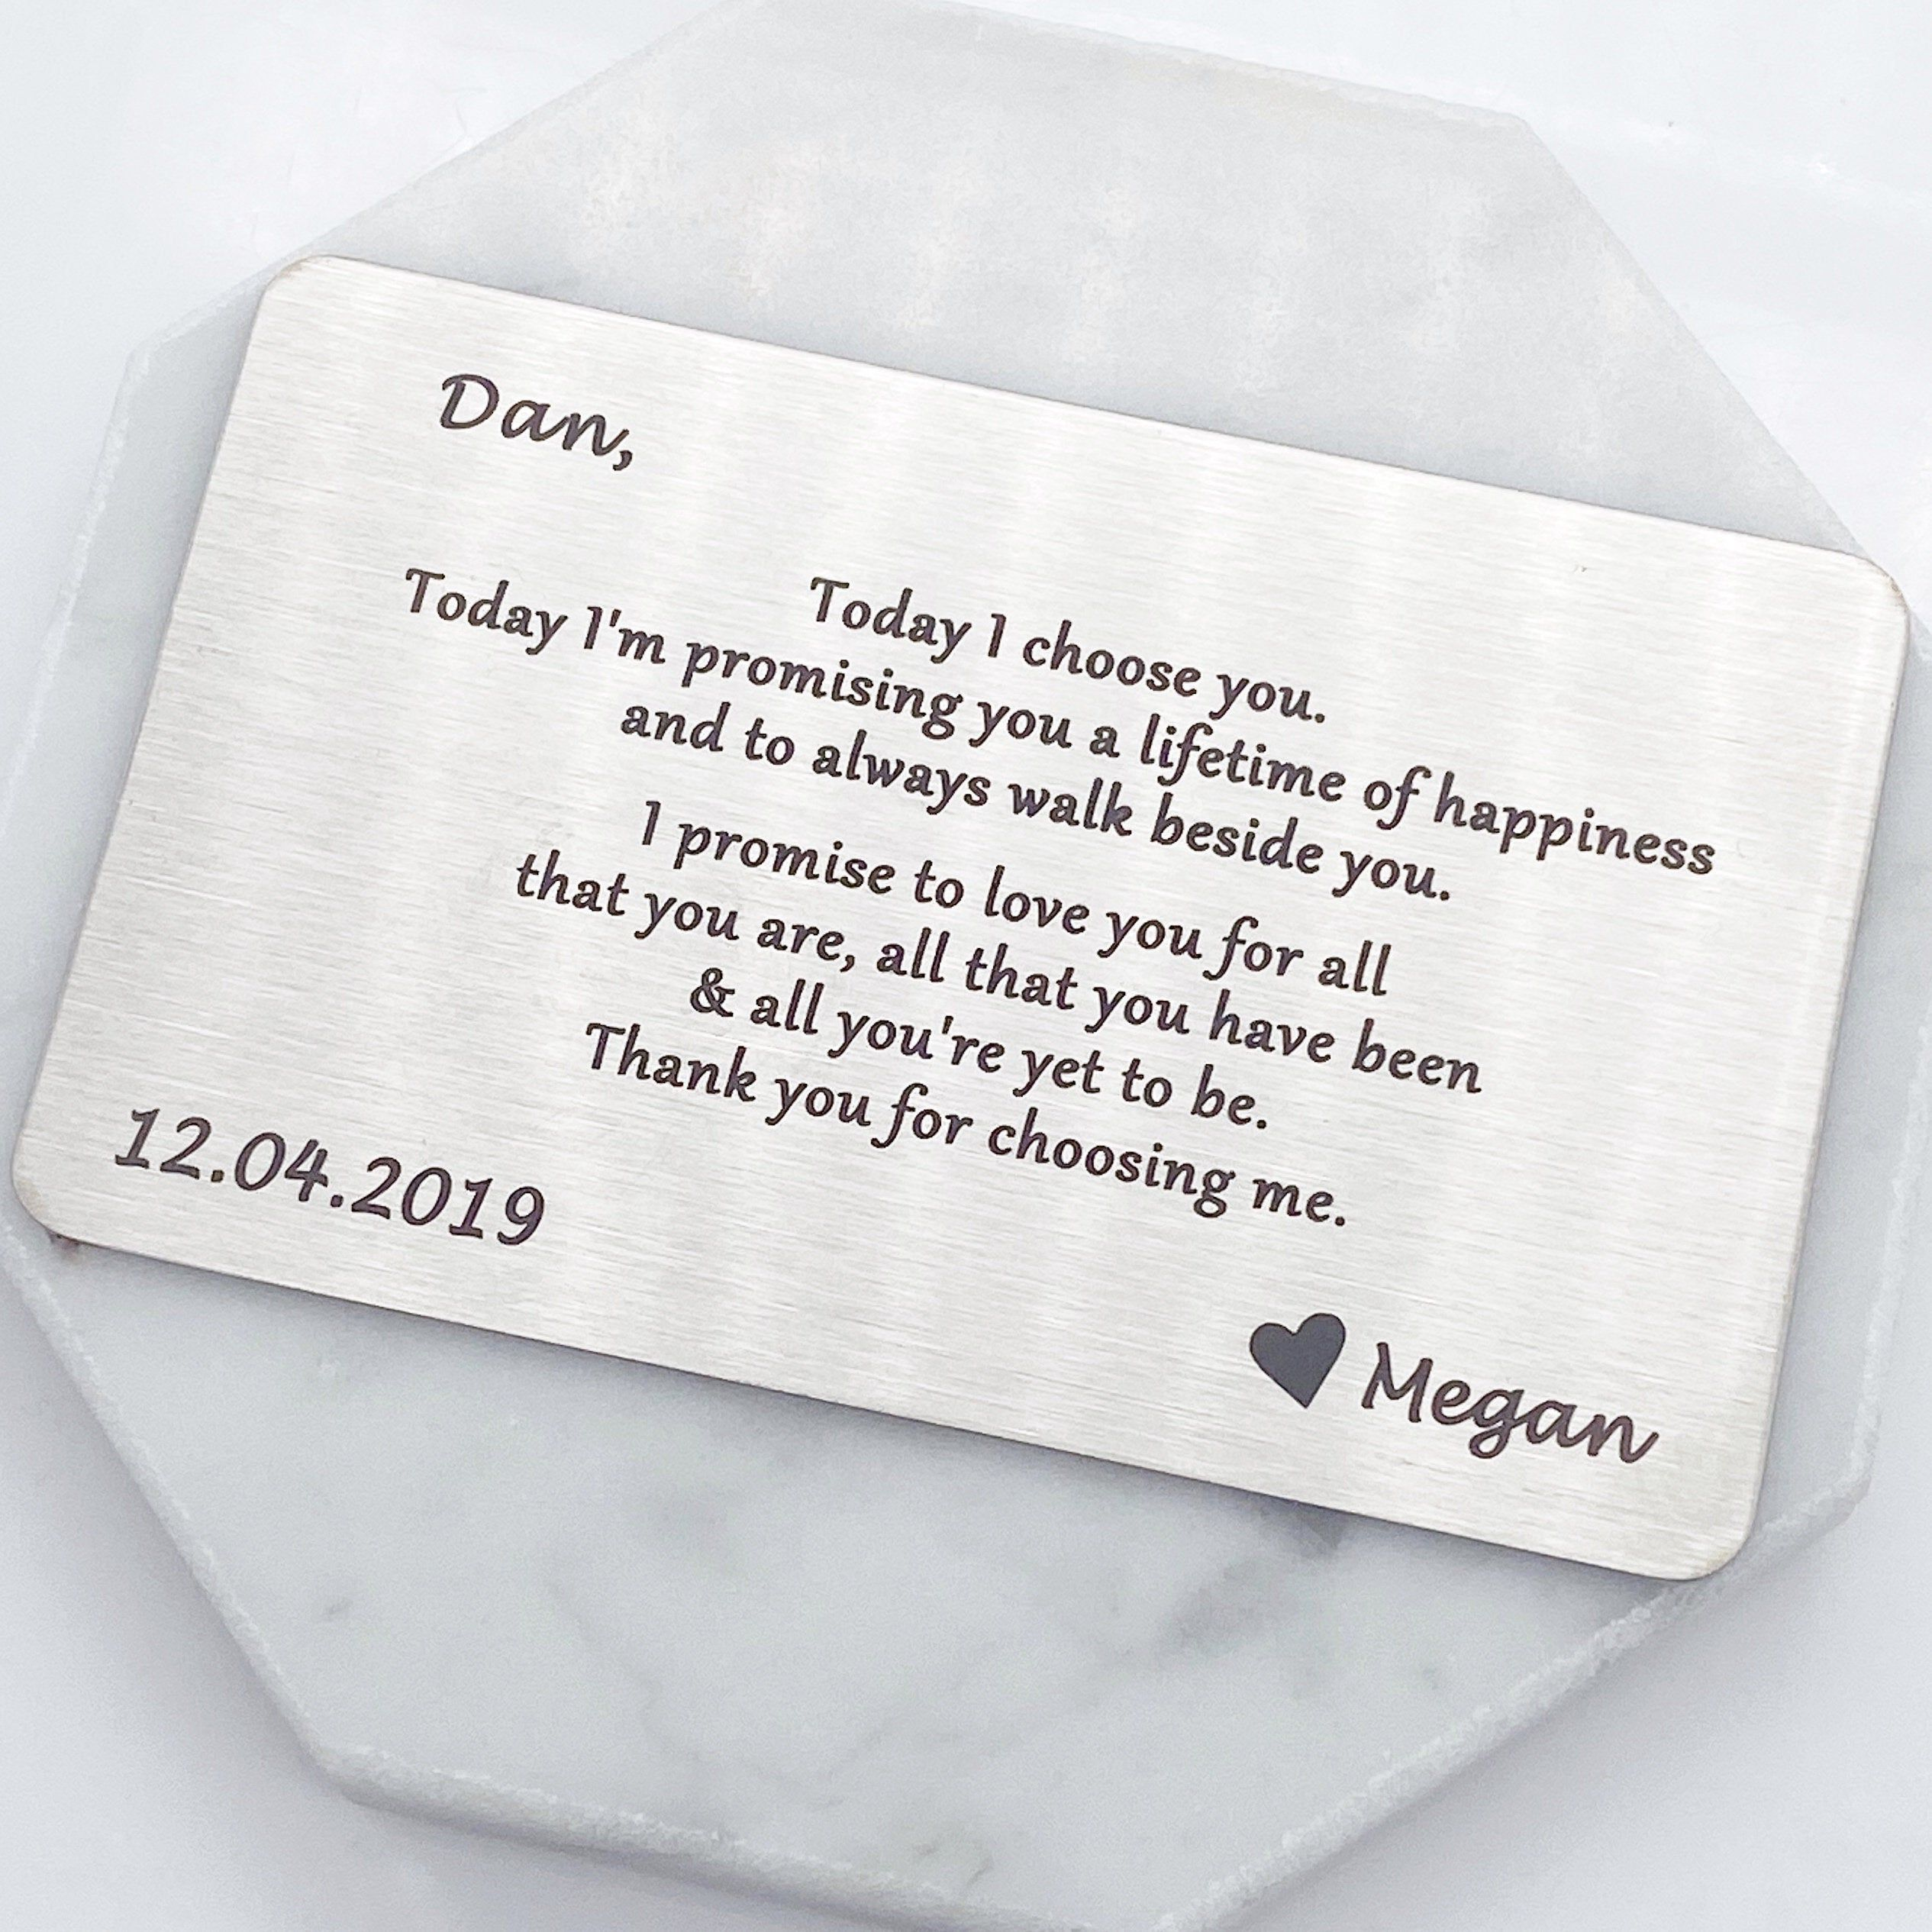 Love Letter Love Note Wallet Card Groom Gift Wedding Gift For Groom Gift From Bri In 2020 Wedding Gifts For Groom Personalized Wedding Gifts Bride And Groom Gifts